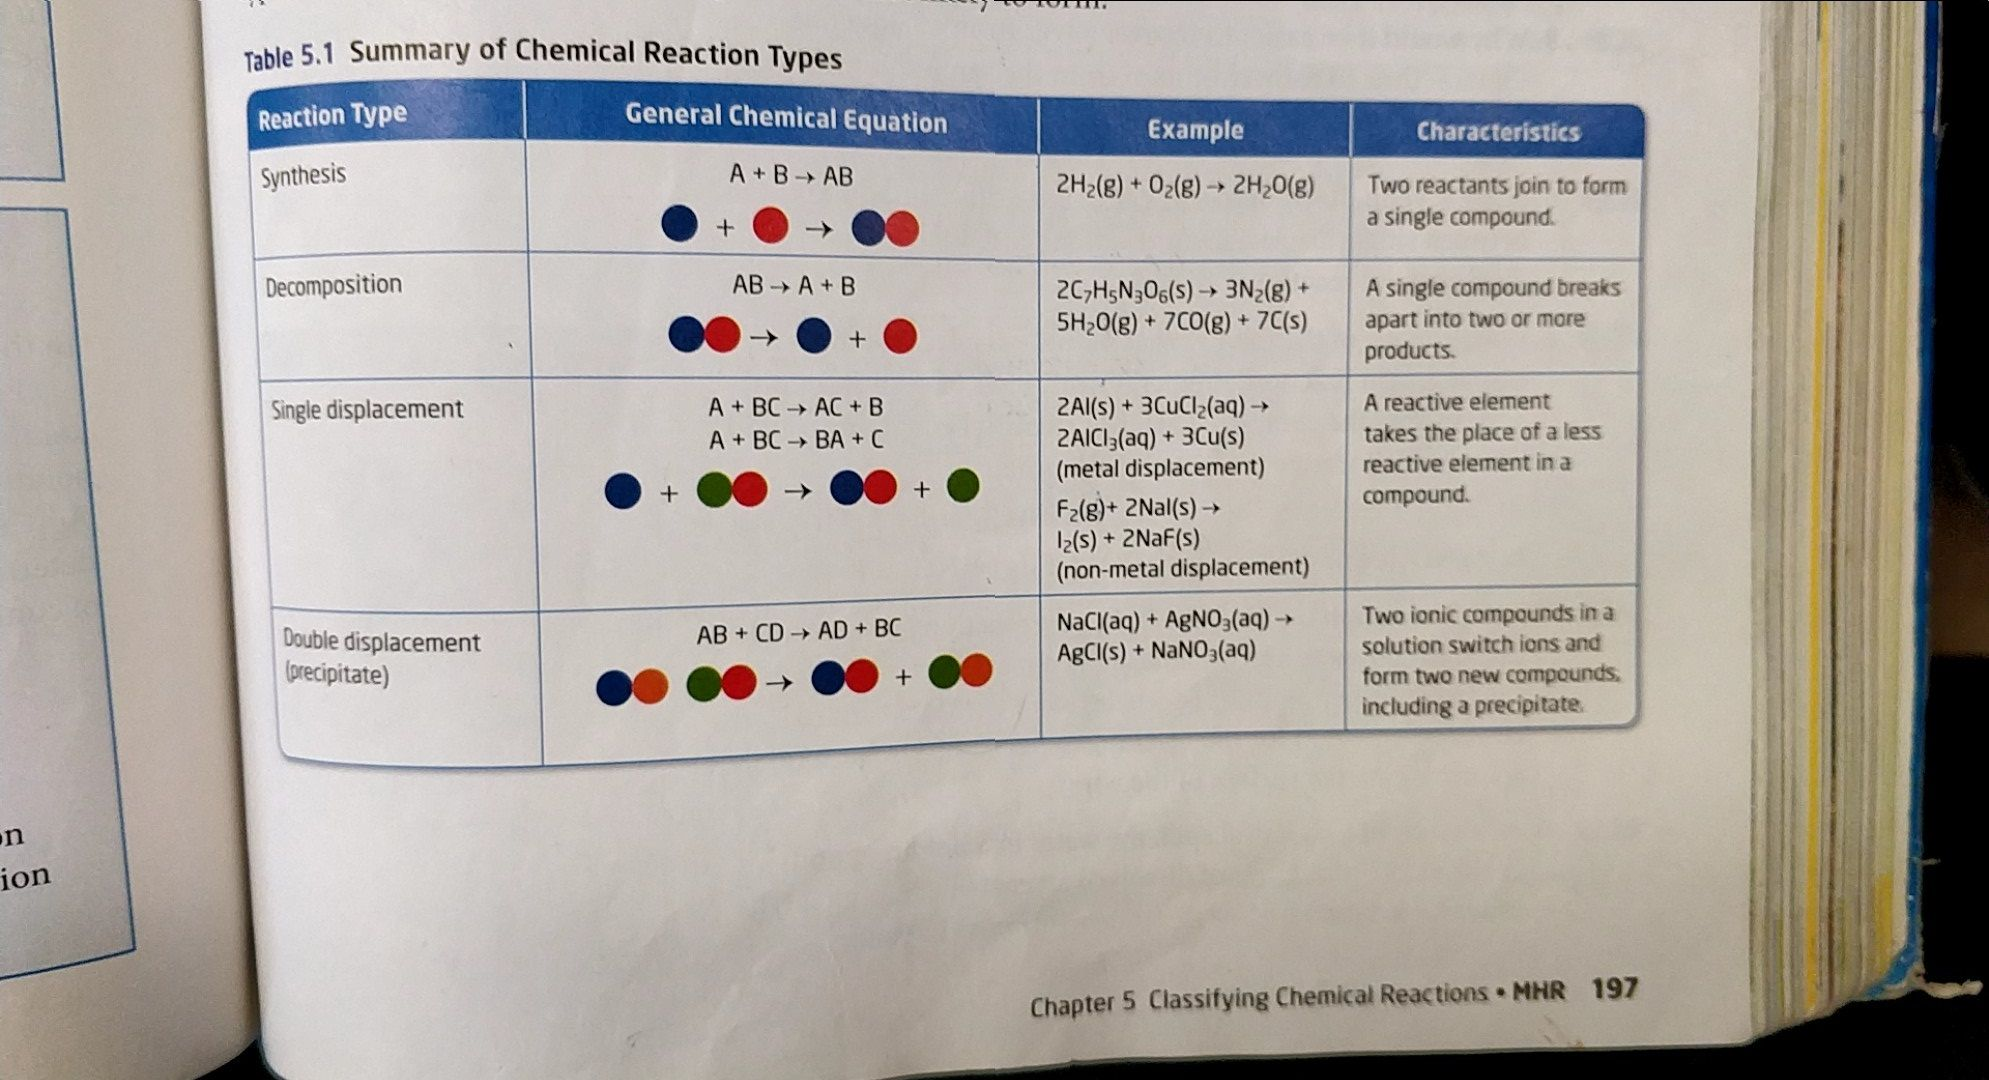 There Are 4 Main Types Of Chemical Reactions Synthesis